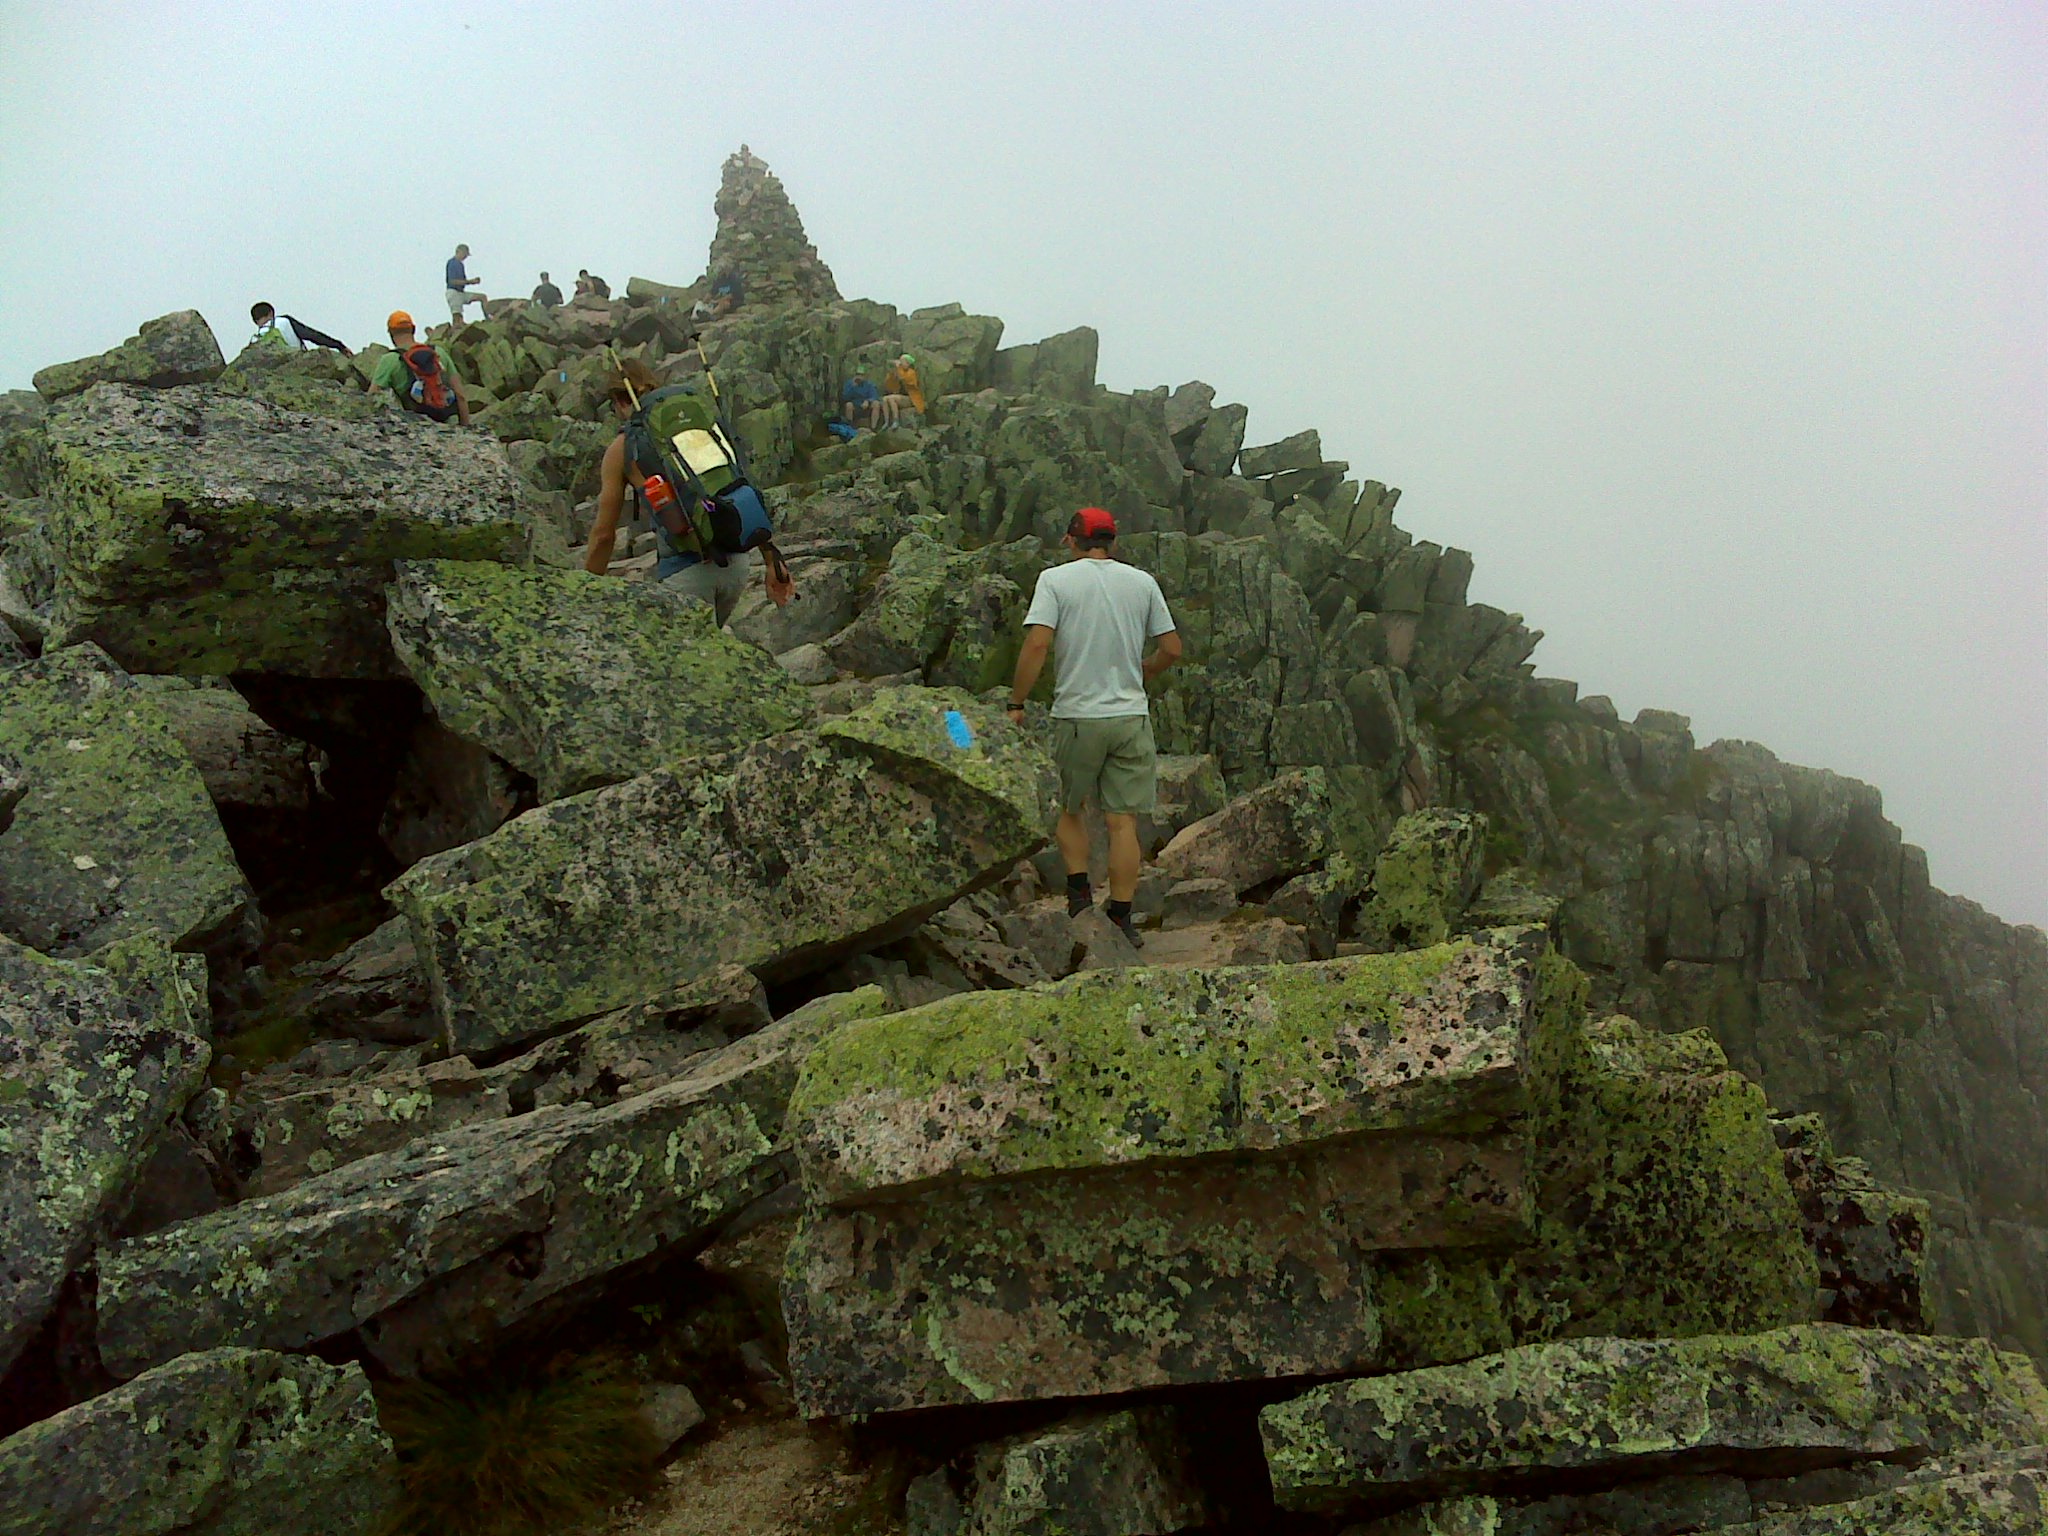 The cairn on Baxter Peak's summit makes Katahdin exactly one mile high